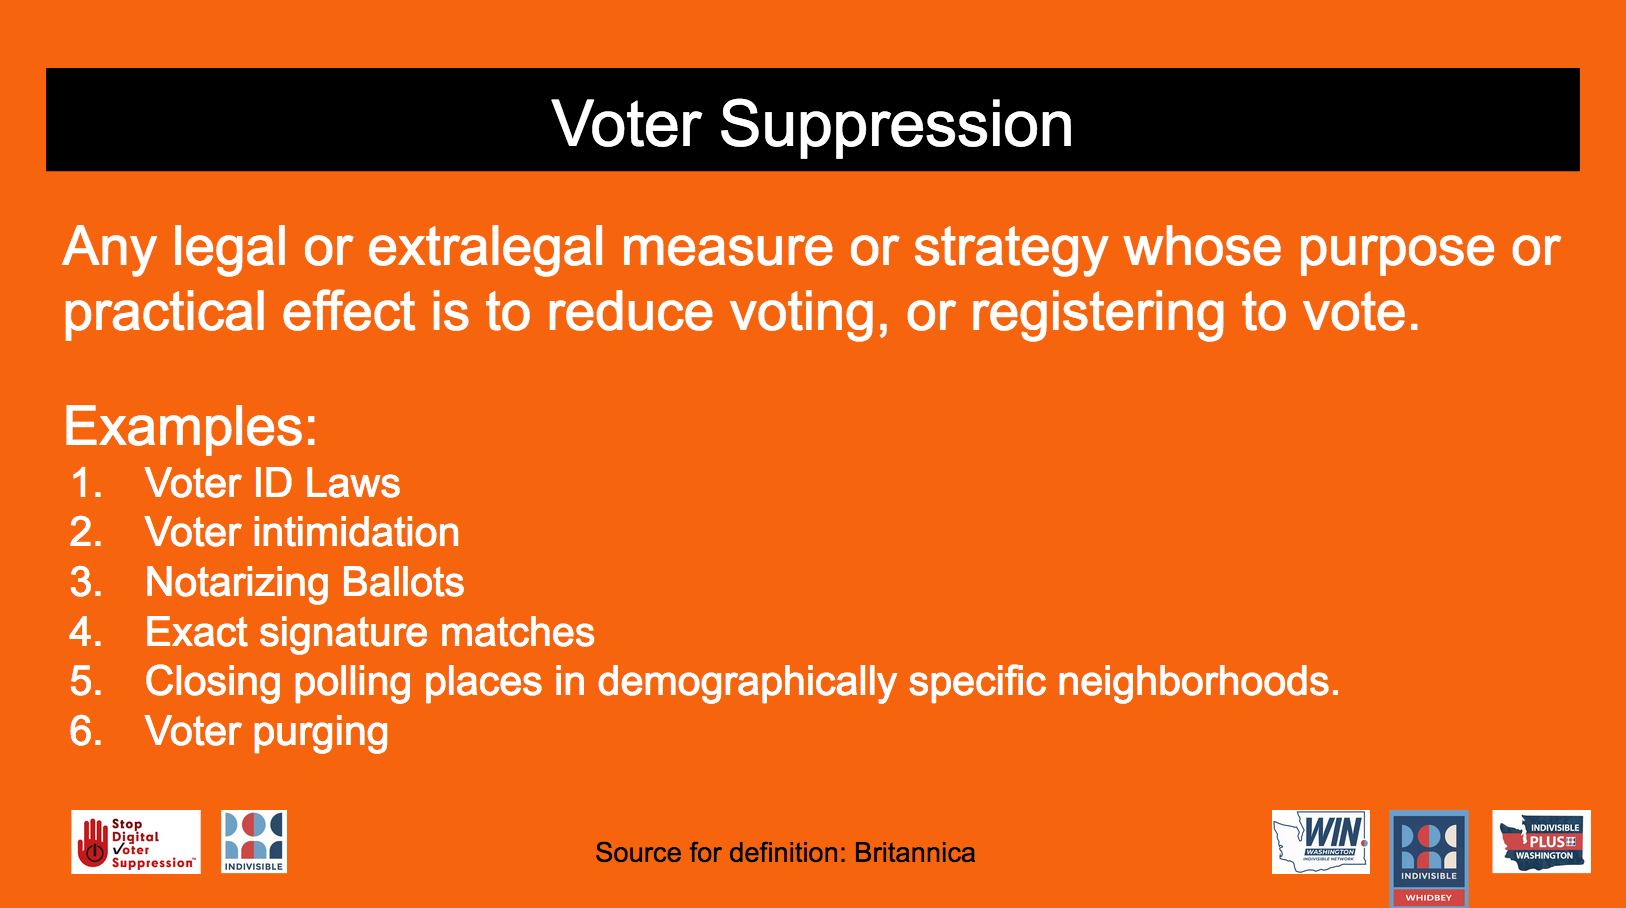 Voter Suppression: Any legal or extralegal measure or strategy whose purpose or practical effect is to reduce voting